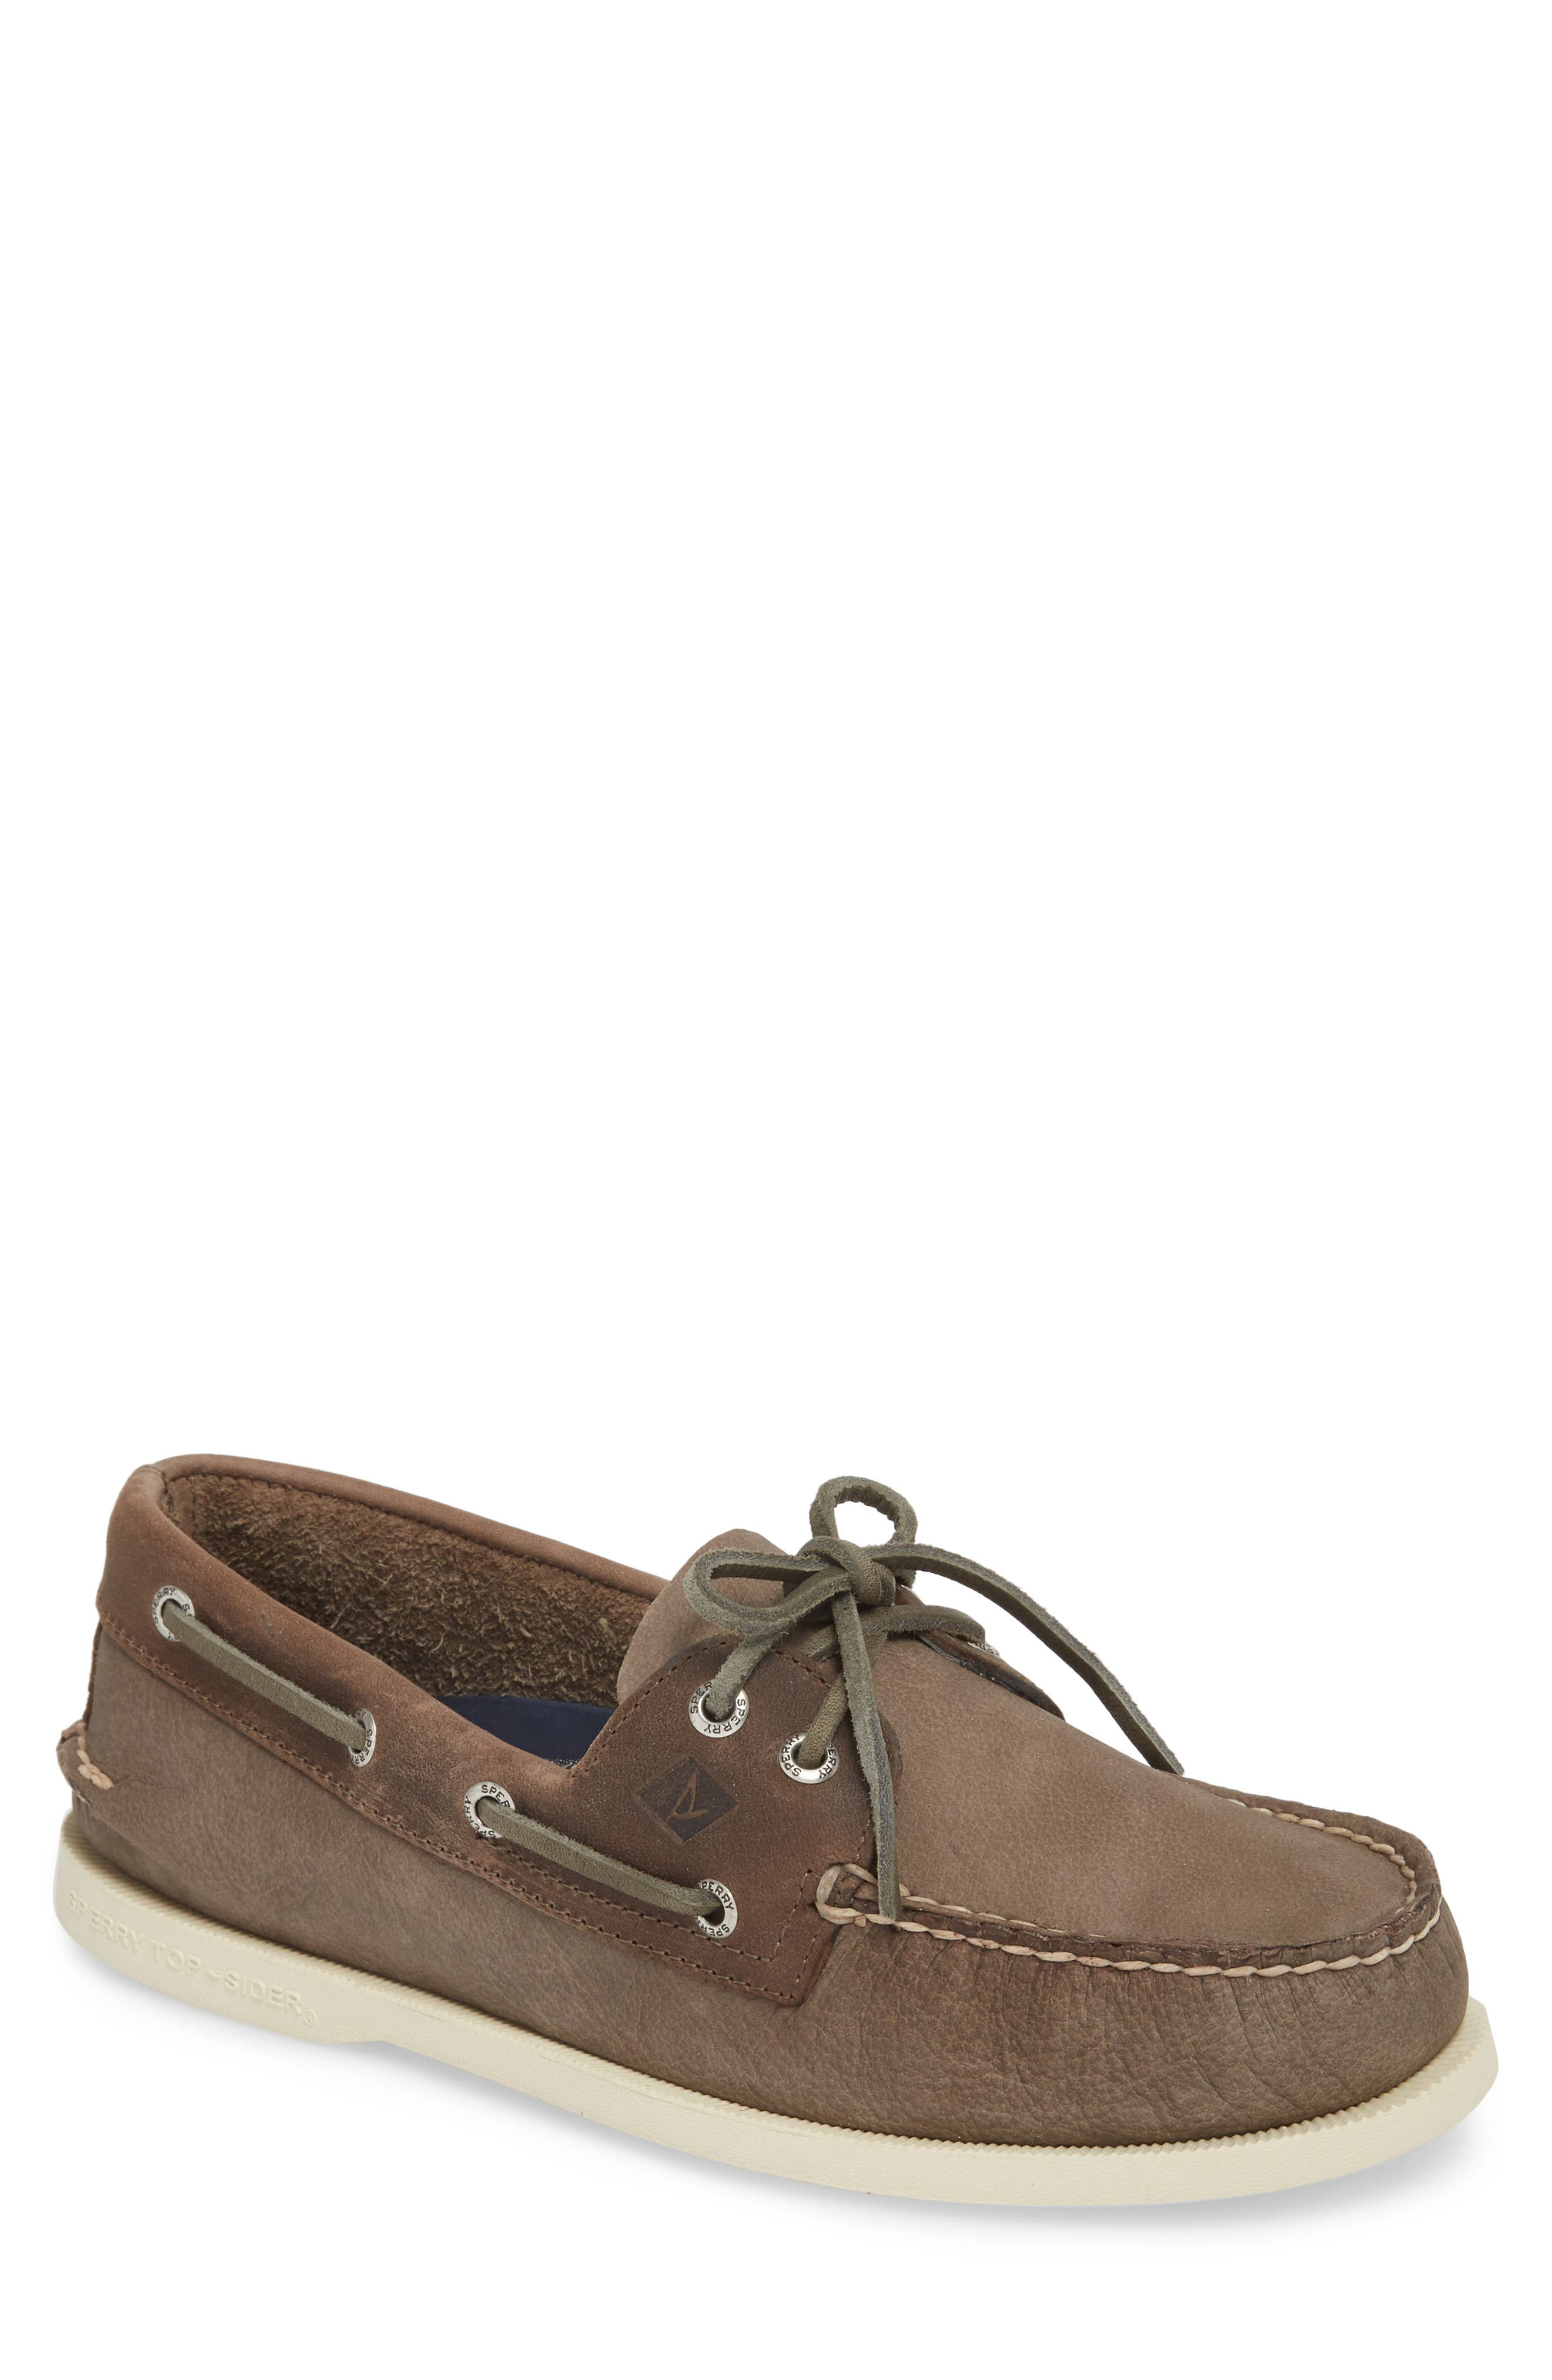 Authentic Original Two-Eye Boat Shoe,                             Main thumbnail 1, color,                             GREY/ CHARCOAL LEATHER